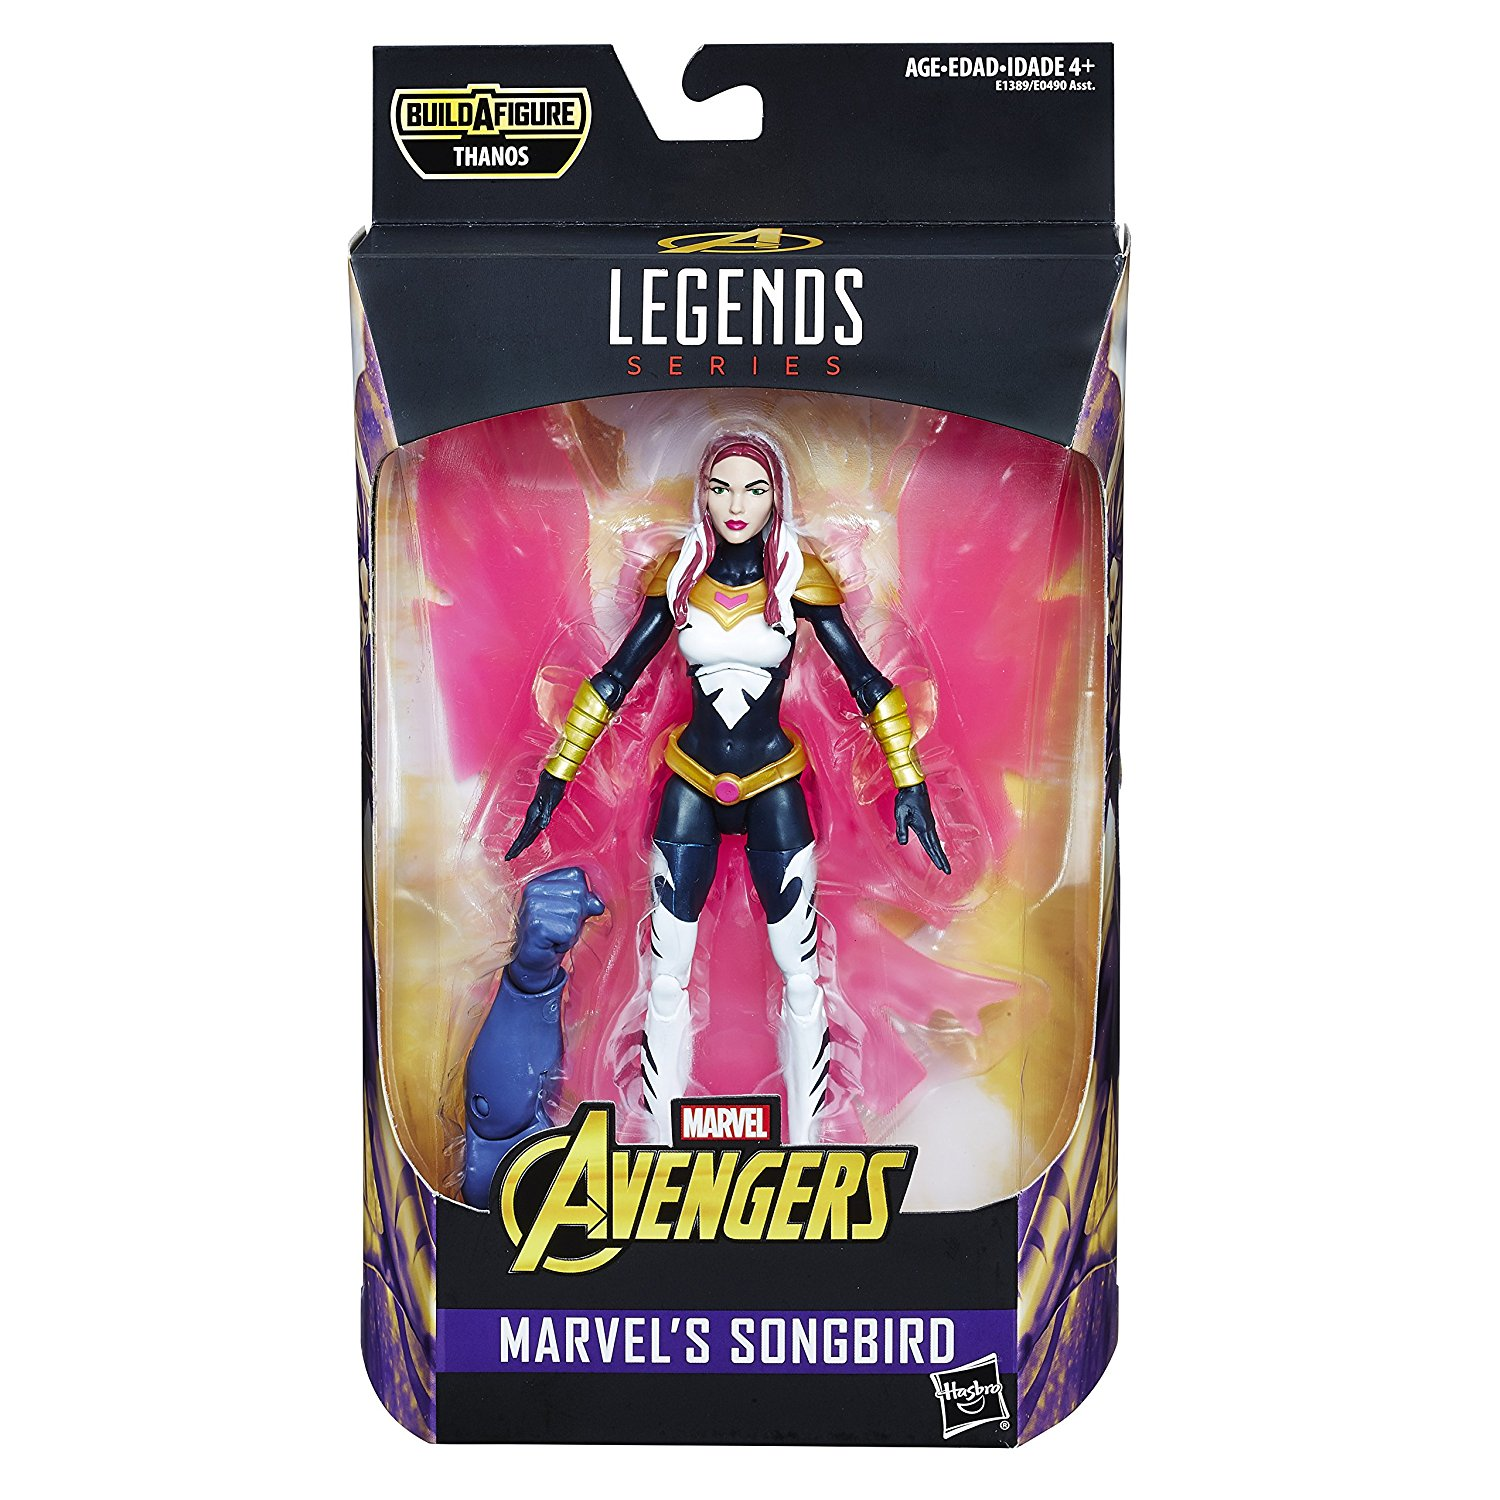 Avengers Marvel Legends Series - Marvel's Songbird (6 inch)